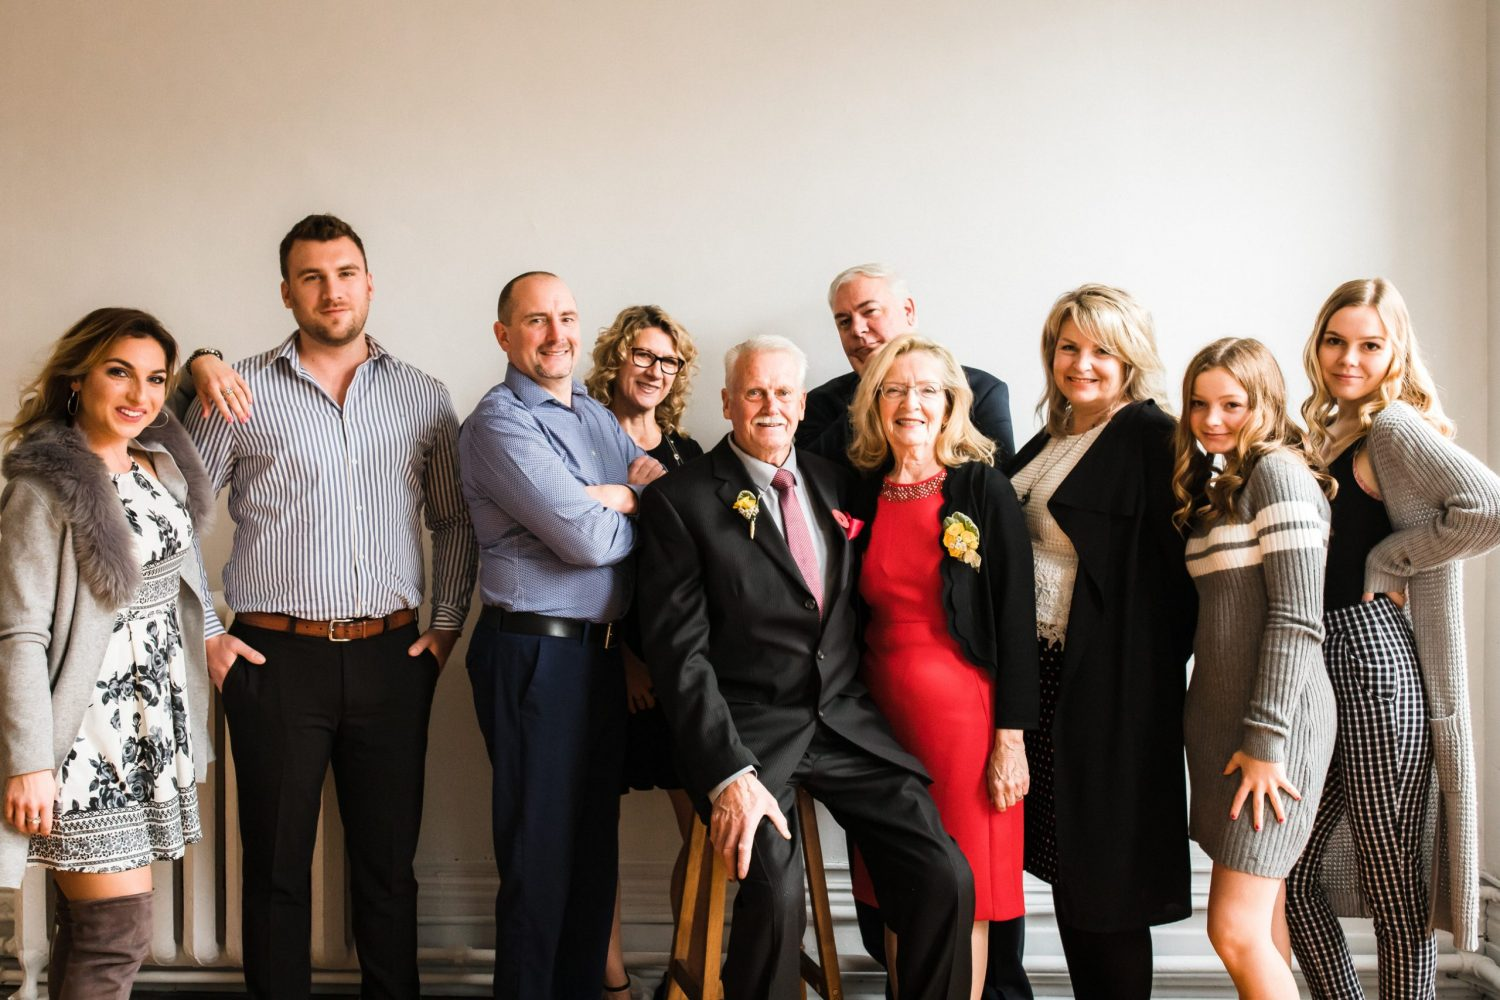 large family photo celebrating 50 years of marriage anniversary at photography studio in downtown peterborough